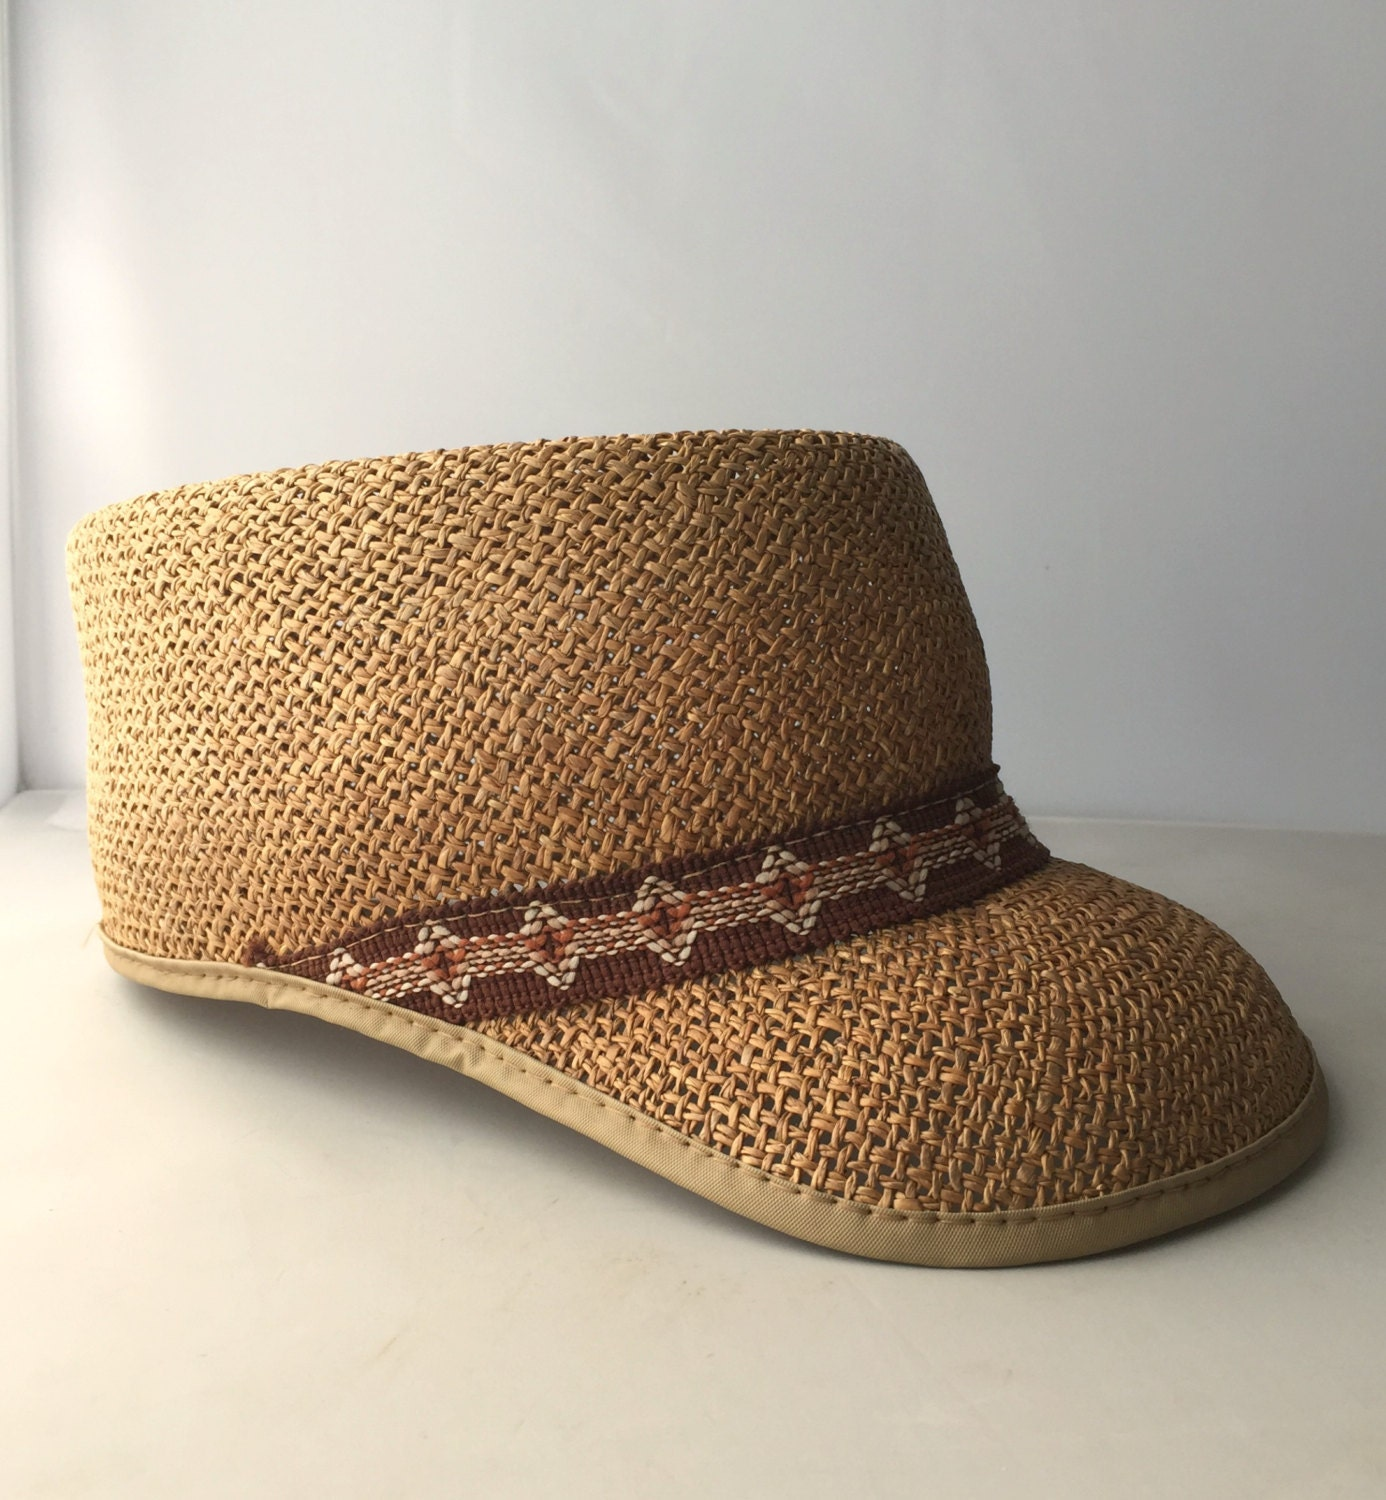 vintage straw baseball hat beachy boho summer fashion